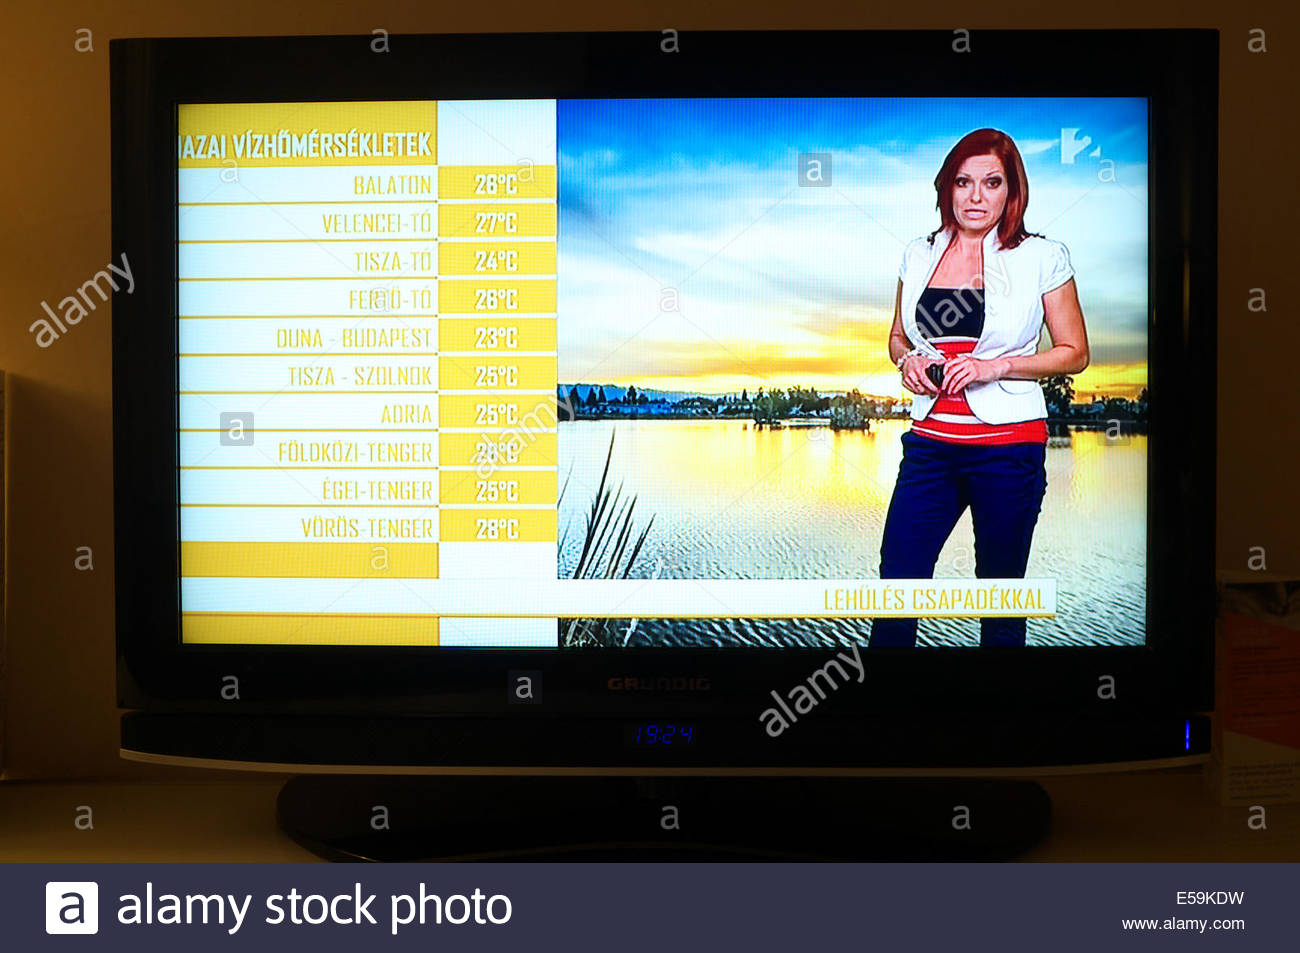 Television weather presenter giving the forecast for Hungary, showing the expected temperatures for different parts - Stock Image